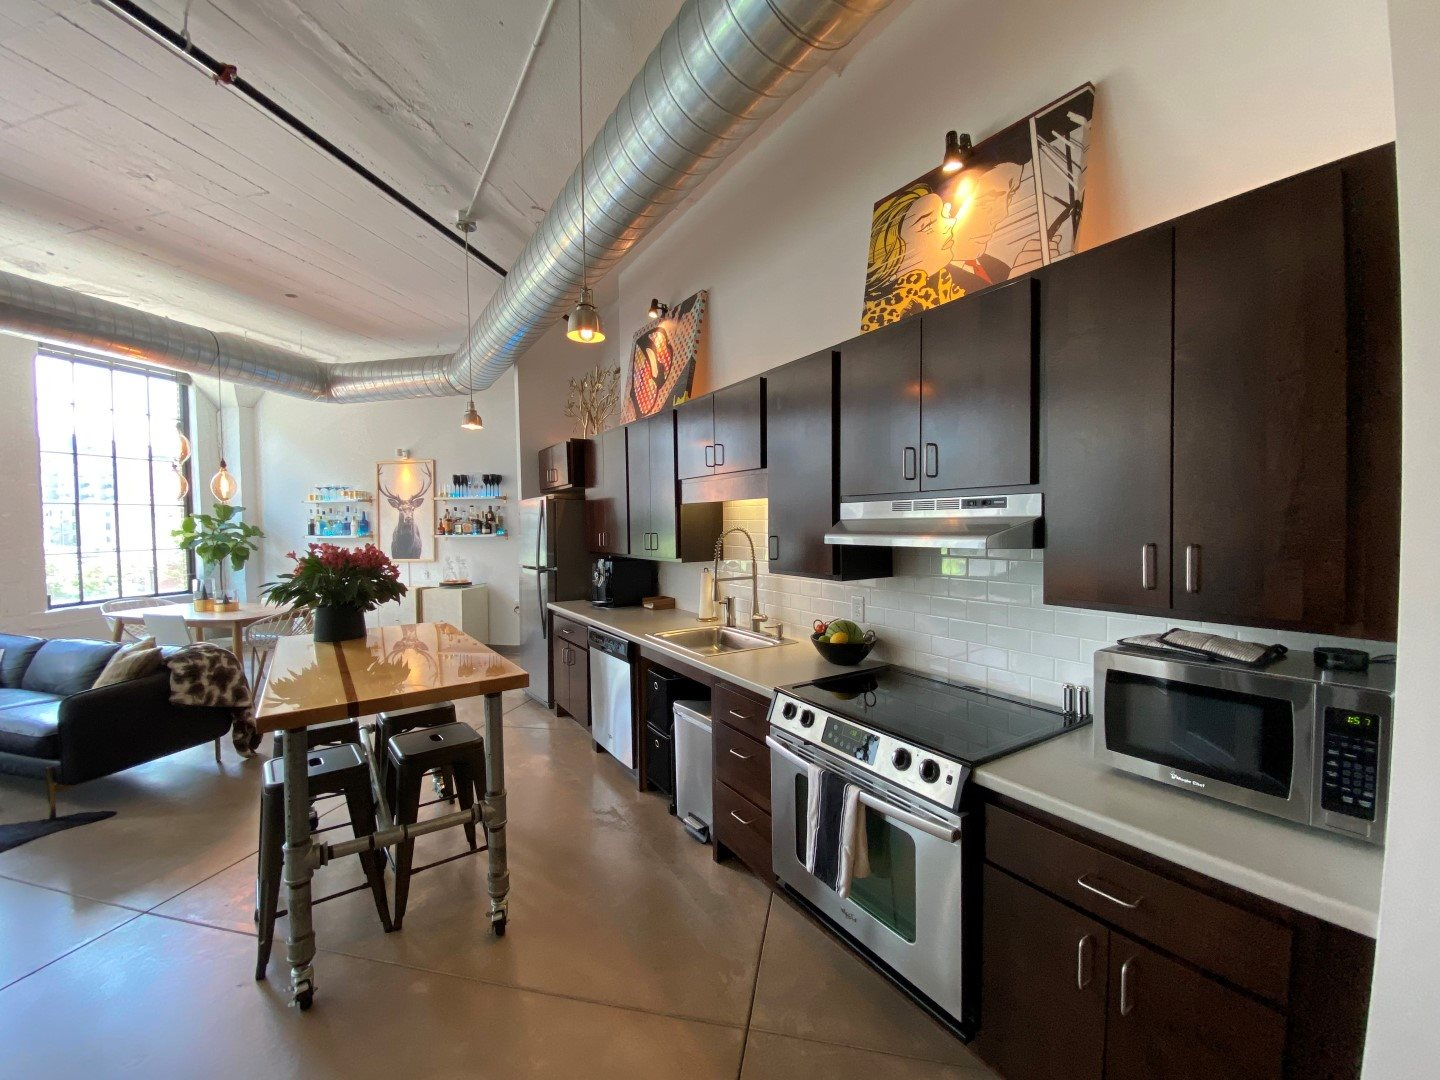 Gurley Lofts one bedroom kitchen